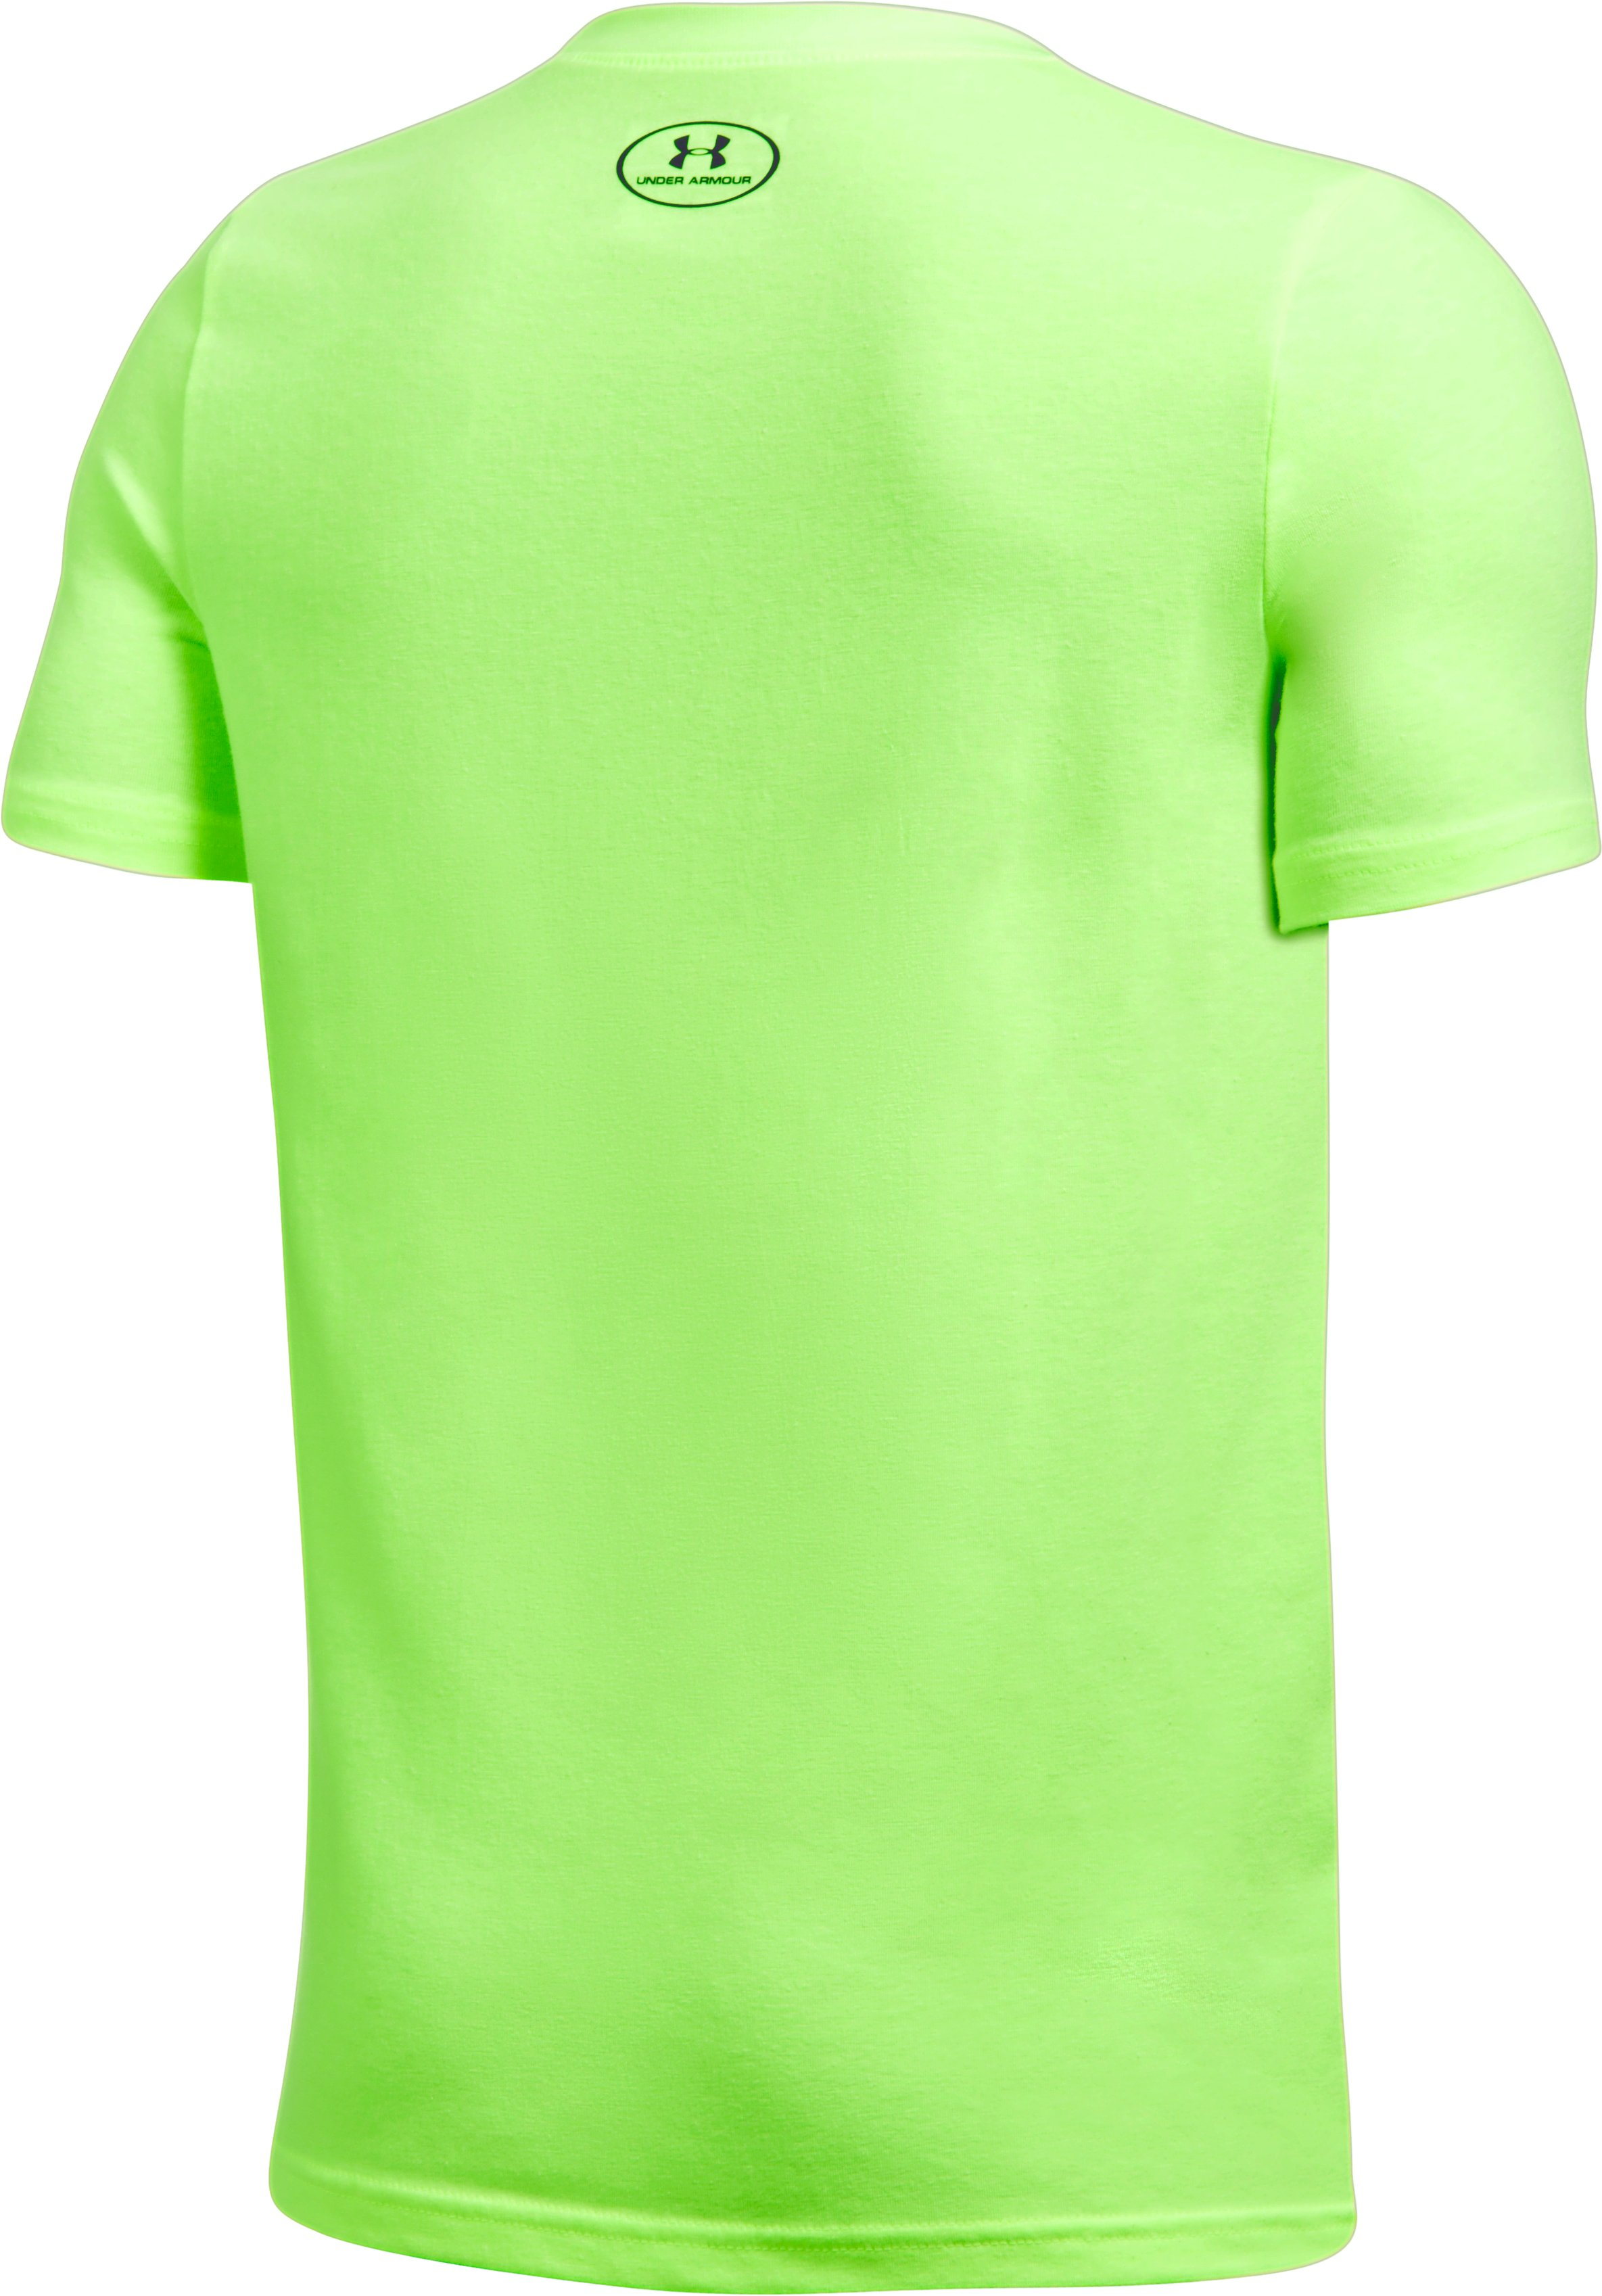 Boys' UA Winning Business T-Shirt, QUIRKY LIME LIGHT HEATHER, undefined